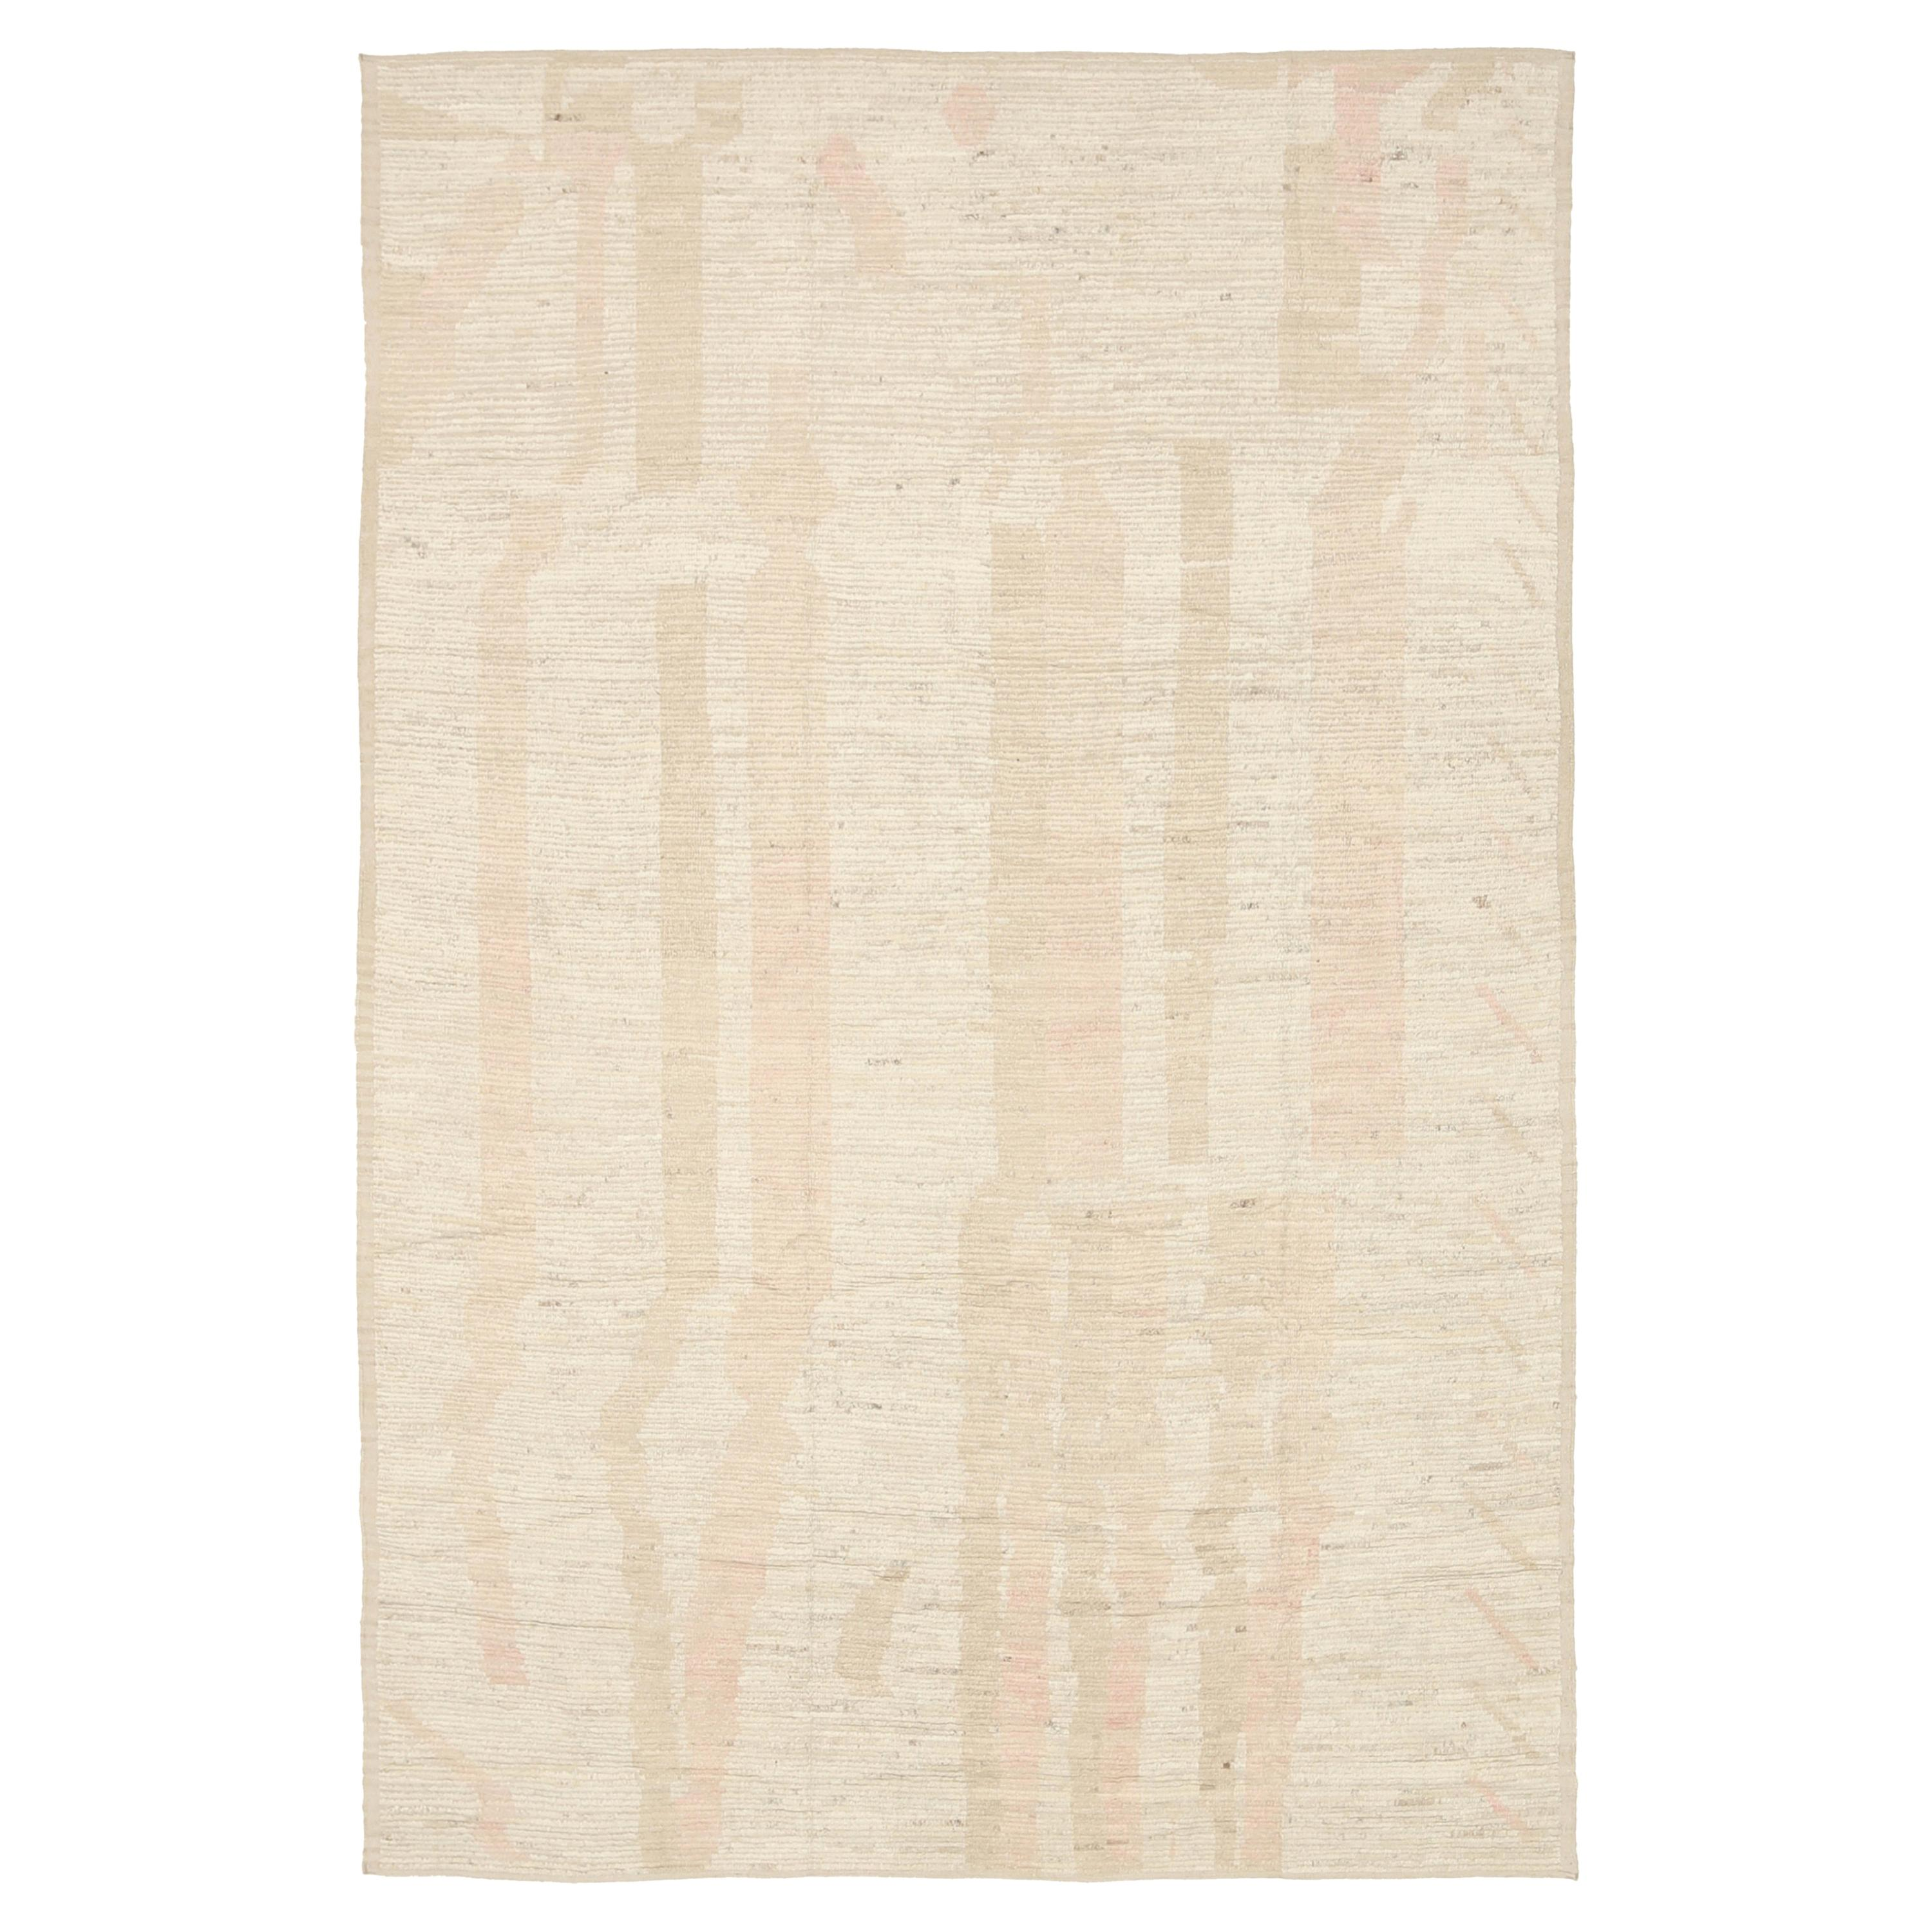 Nazmiyal Collection Beige Orange Modern Distressed Rug. 8 ft 9 in x 12 ft 8 in